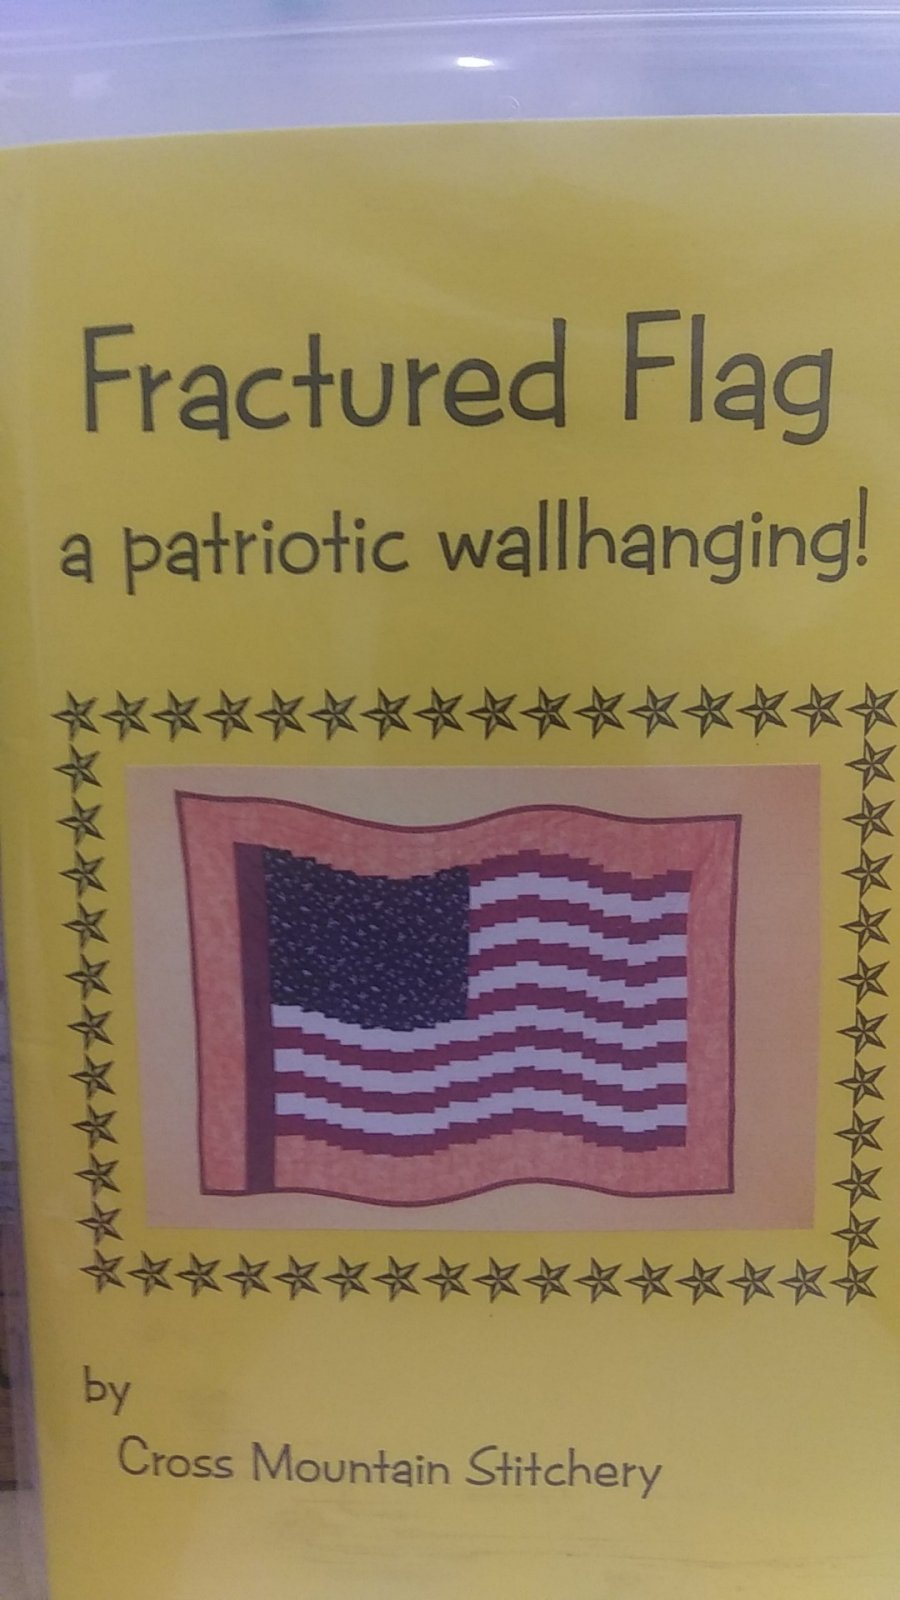 Fractured Flag a patriotic wallhanging